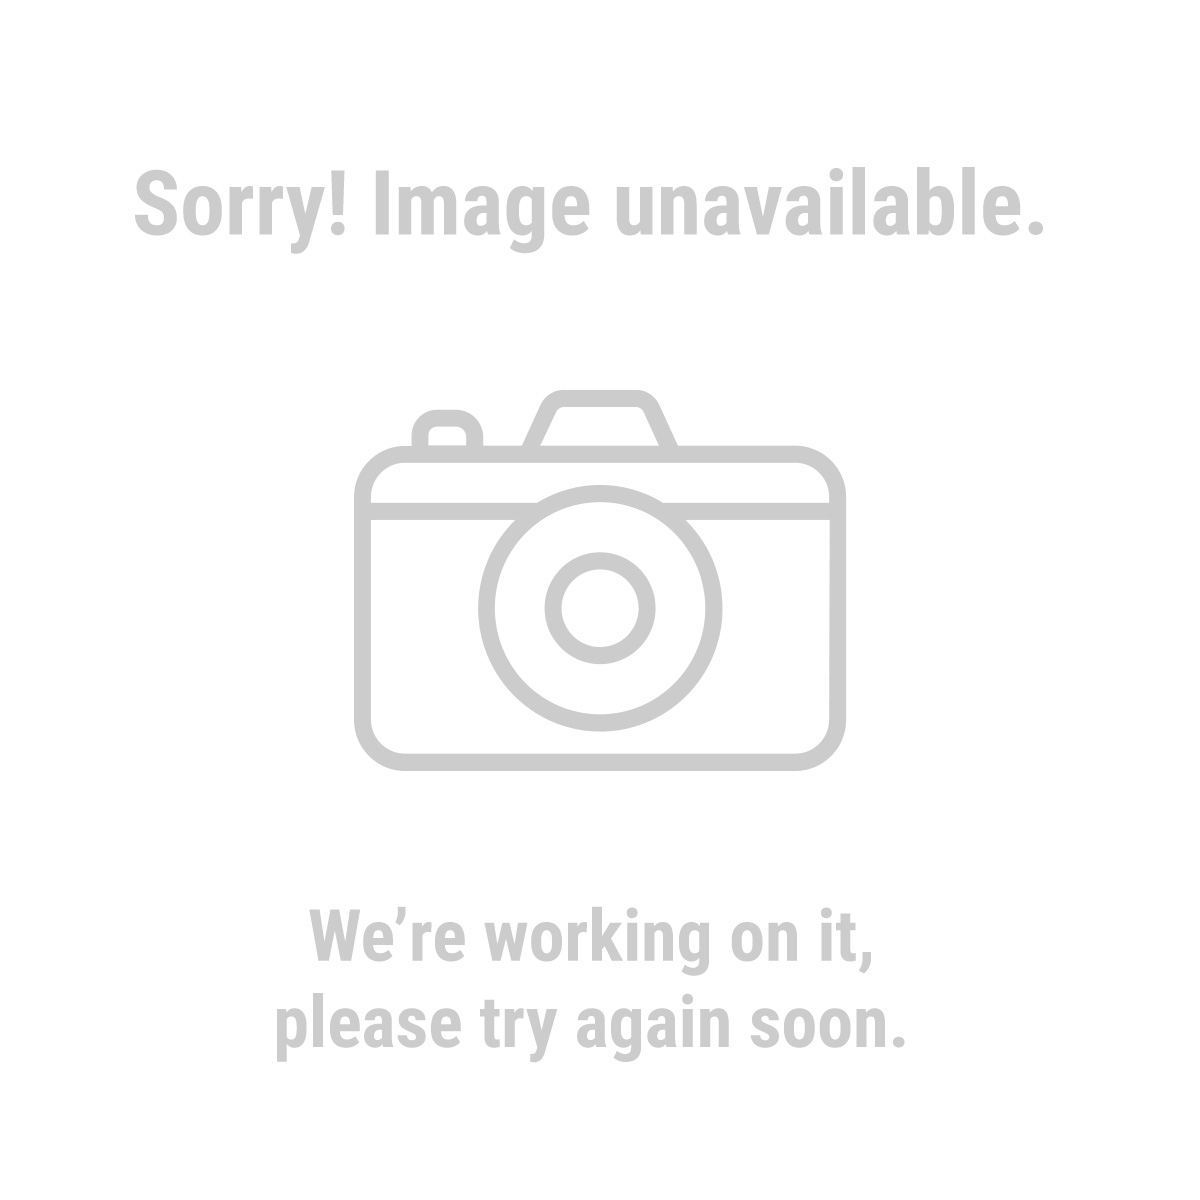 9910 UV Safety Glasses with Grey Lenses